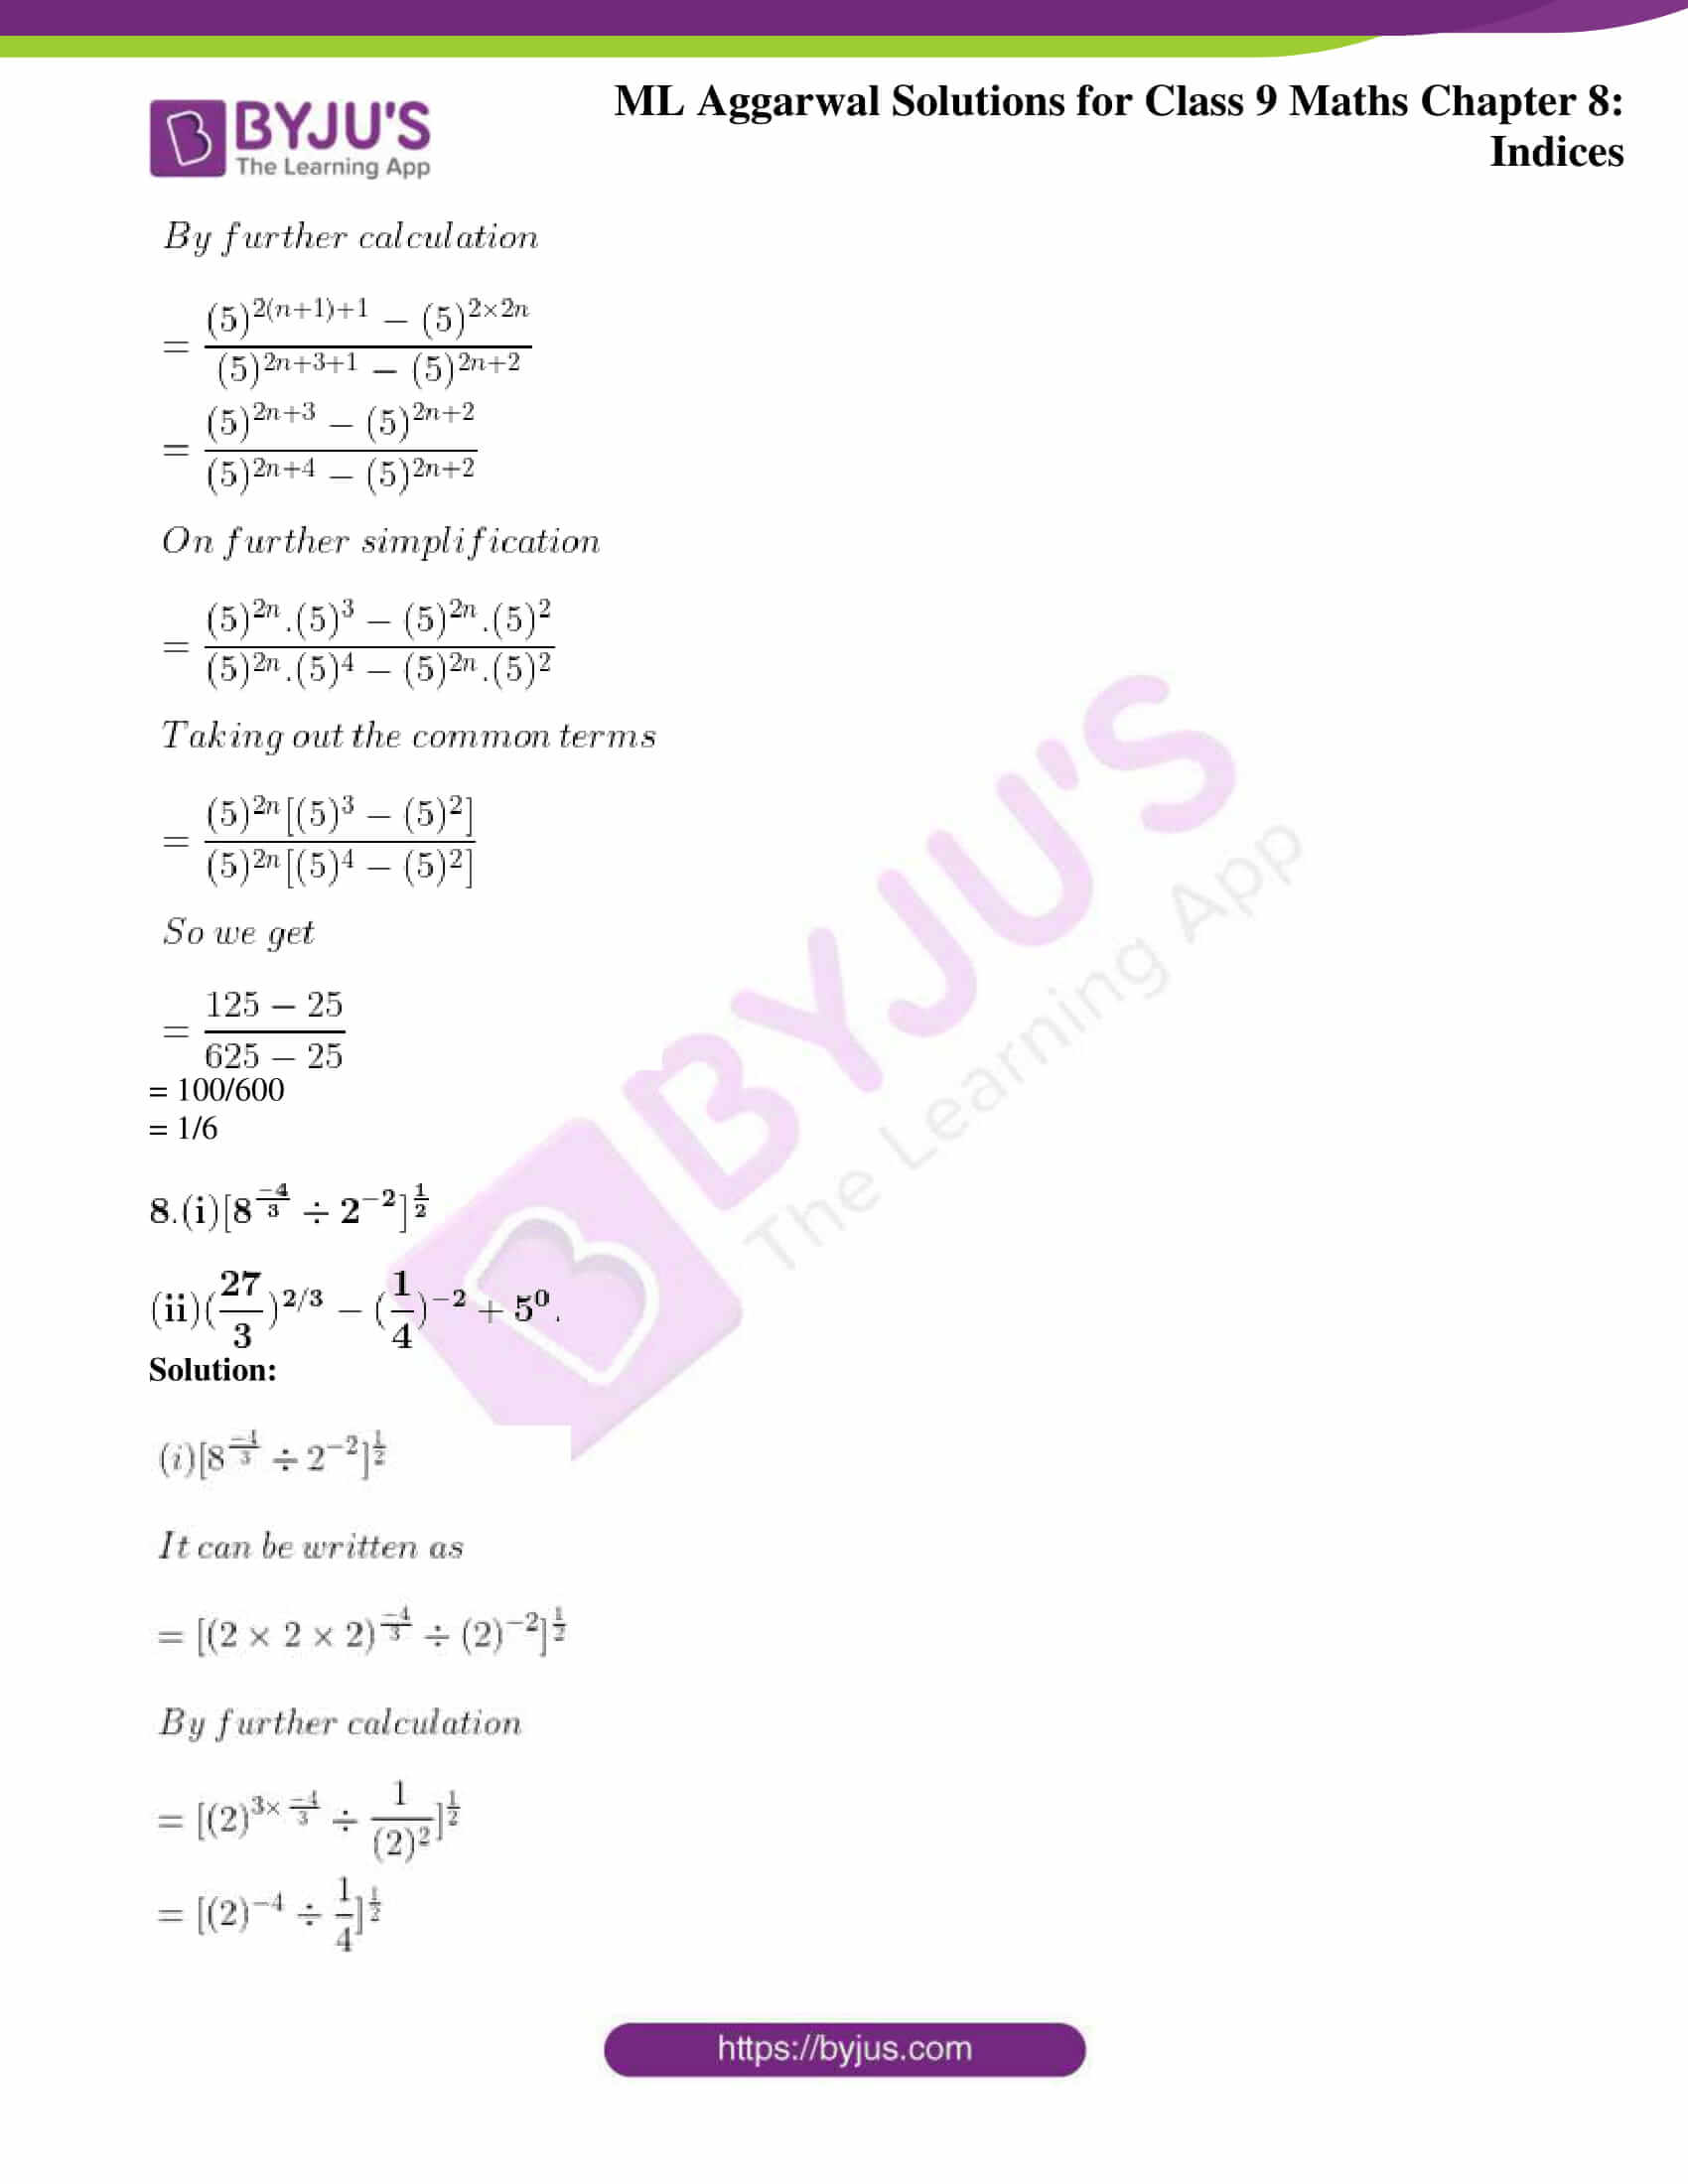 ml aggarwal solutions for class 9 maths chapter 8 05